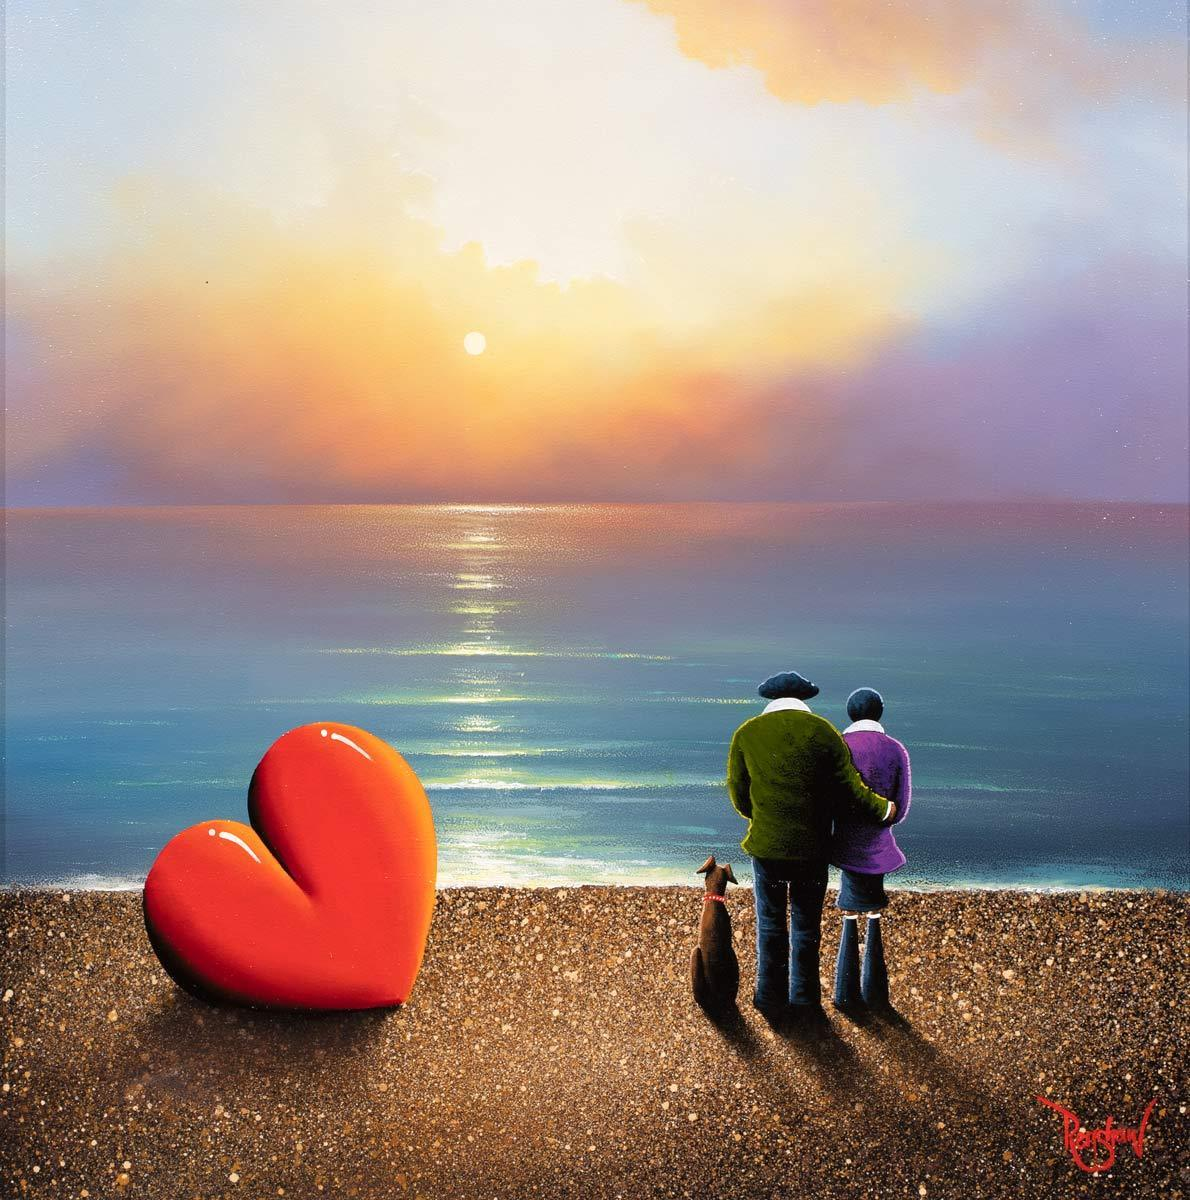 Copy of Love is in the Air - Original David Renshaw Framed